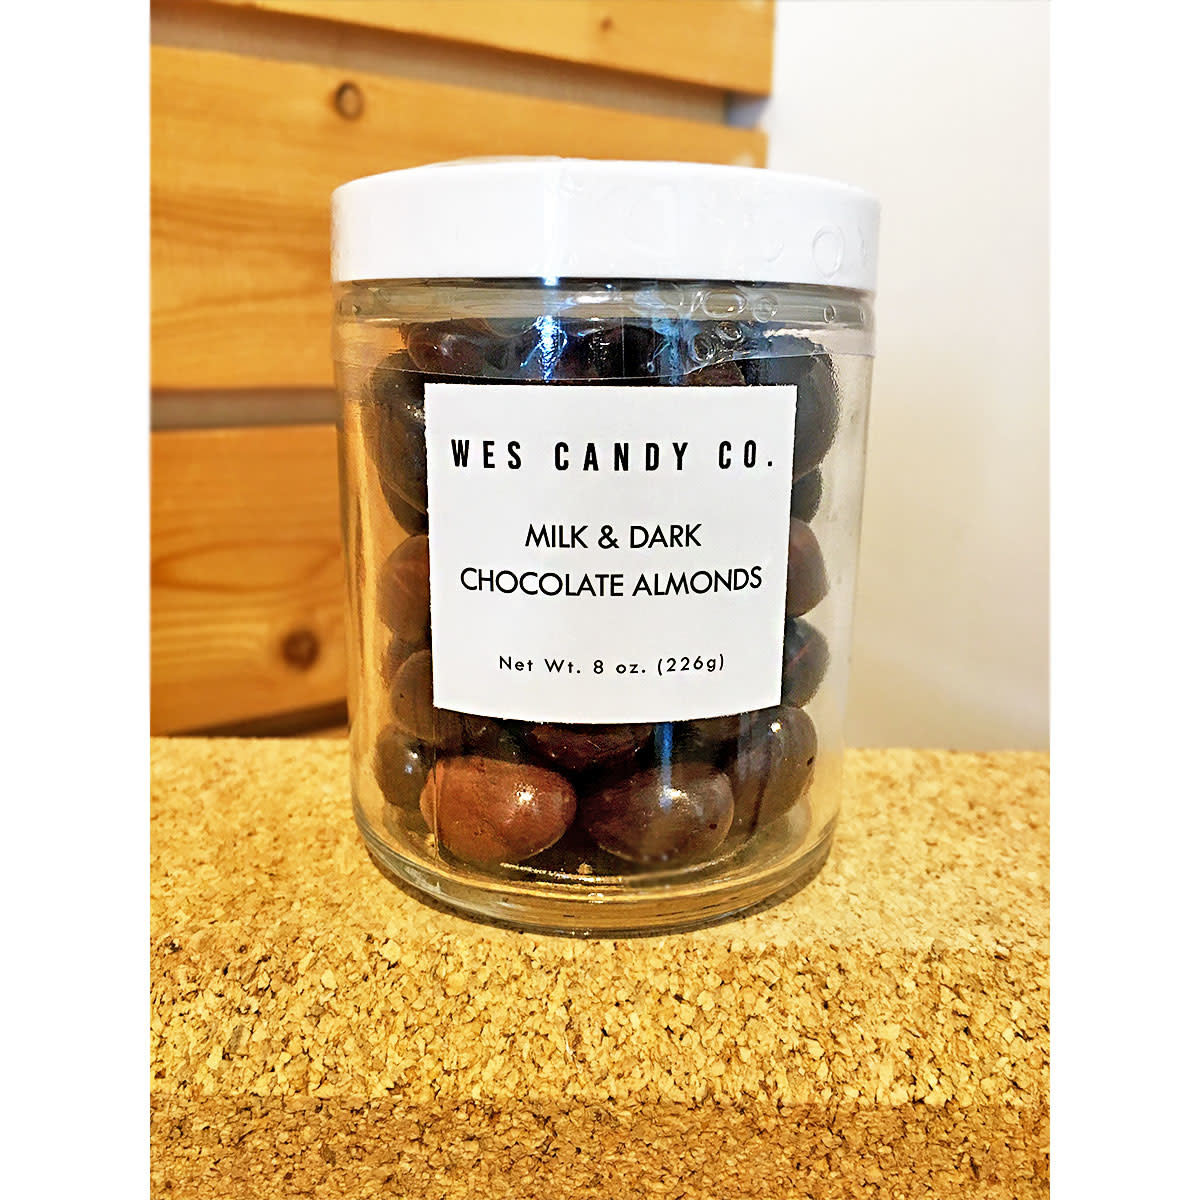 Wes Candy Co. Milk + Dark Chocolate Almond Jar